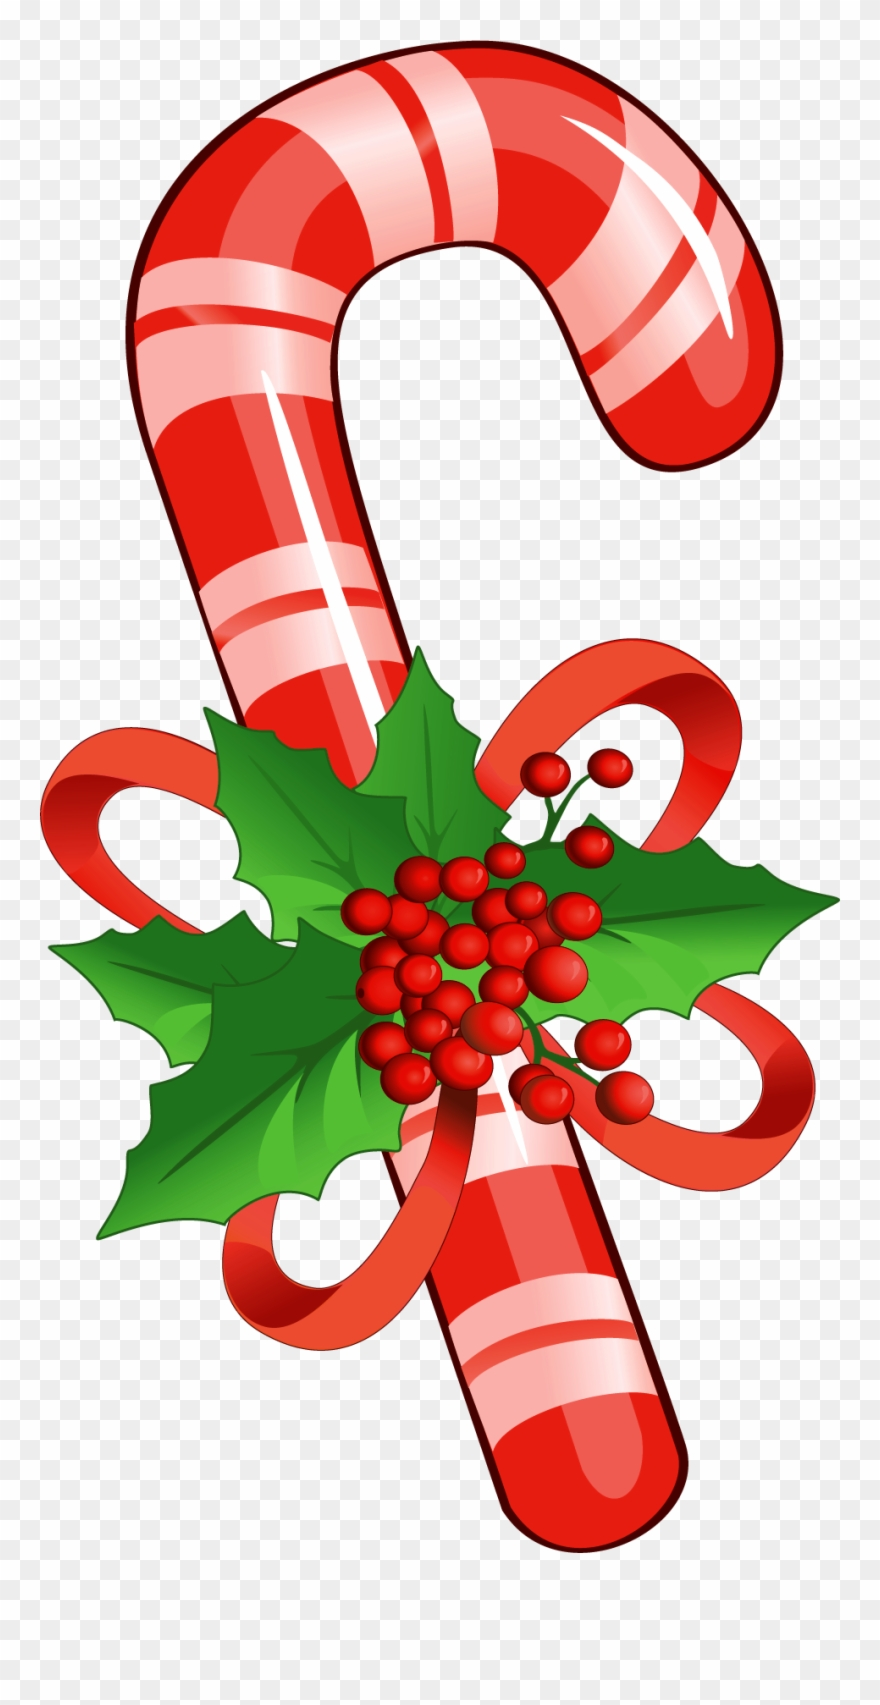 Christmas candy cane. Clipart png google search